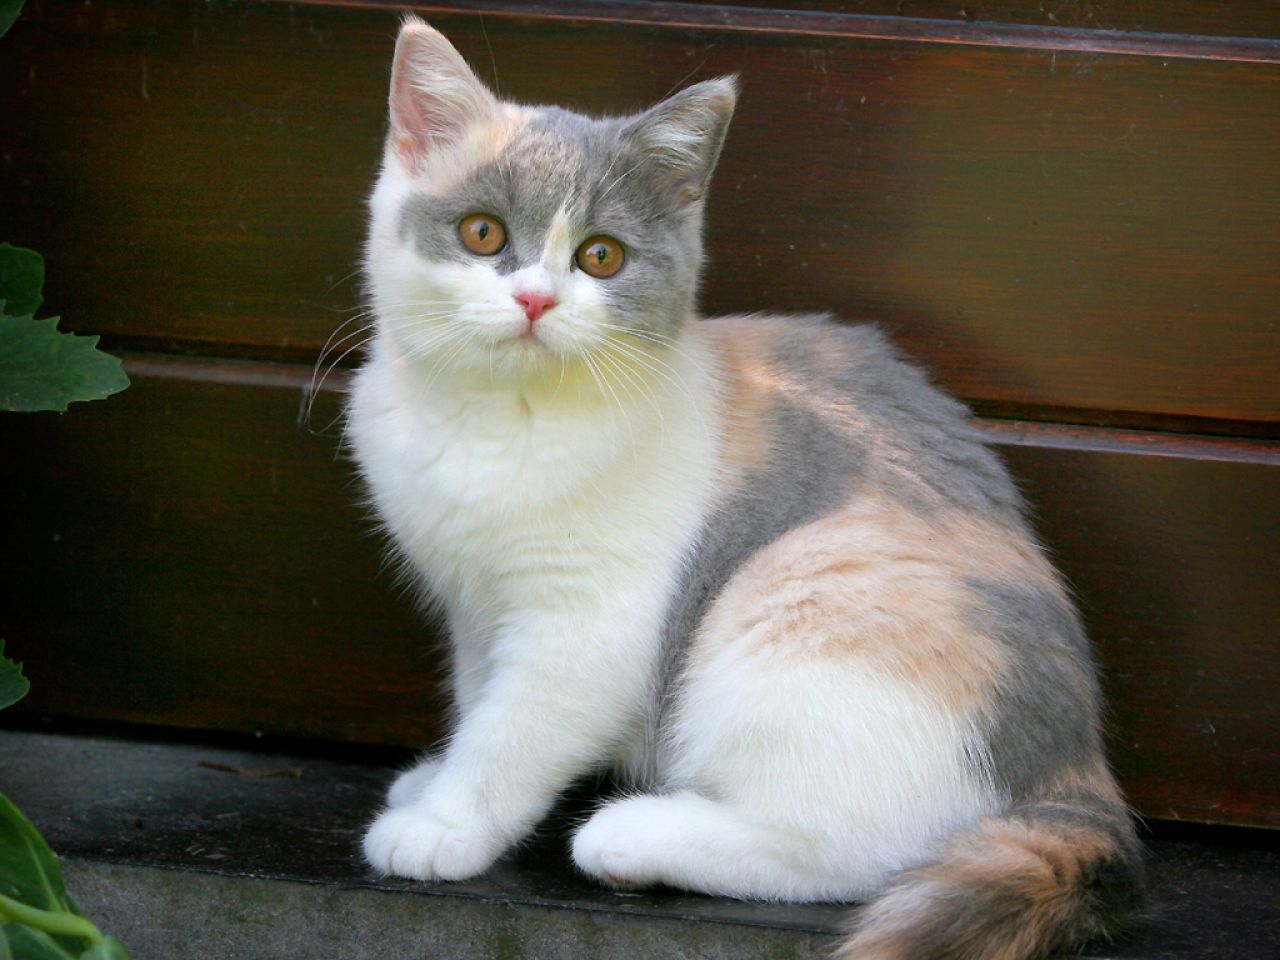 British Shorthair Dilute Calico Wild Cat Breeds Cats And Kittens Short Hair Cats